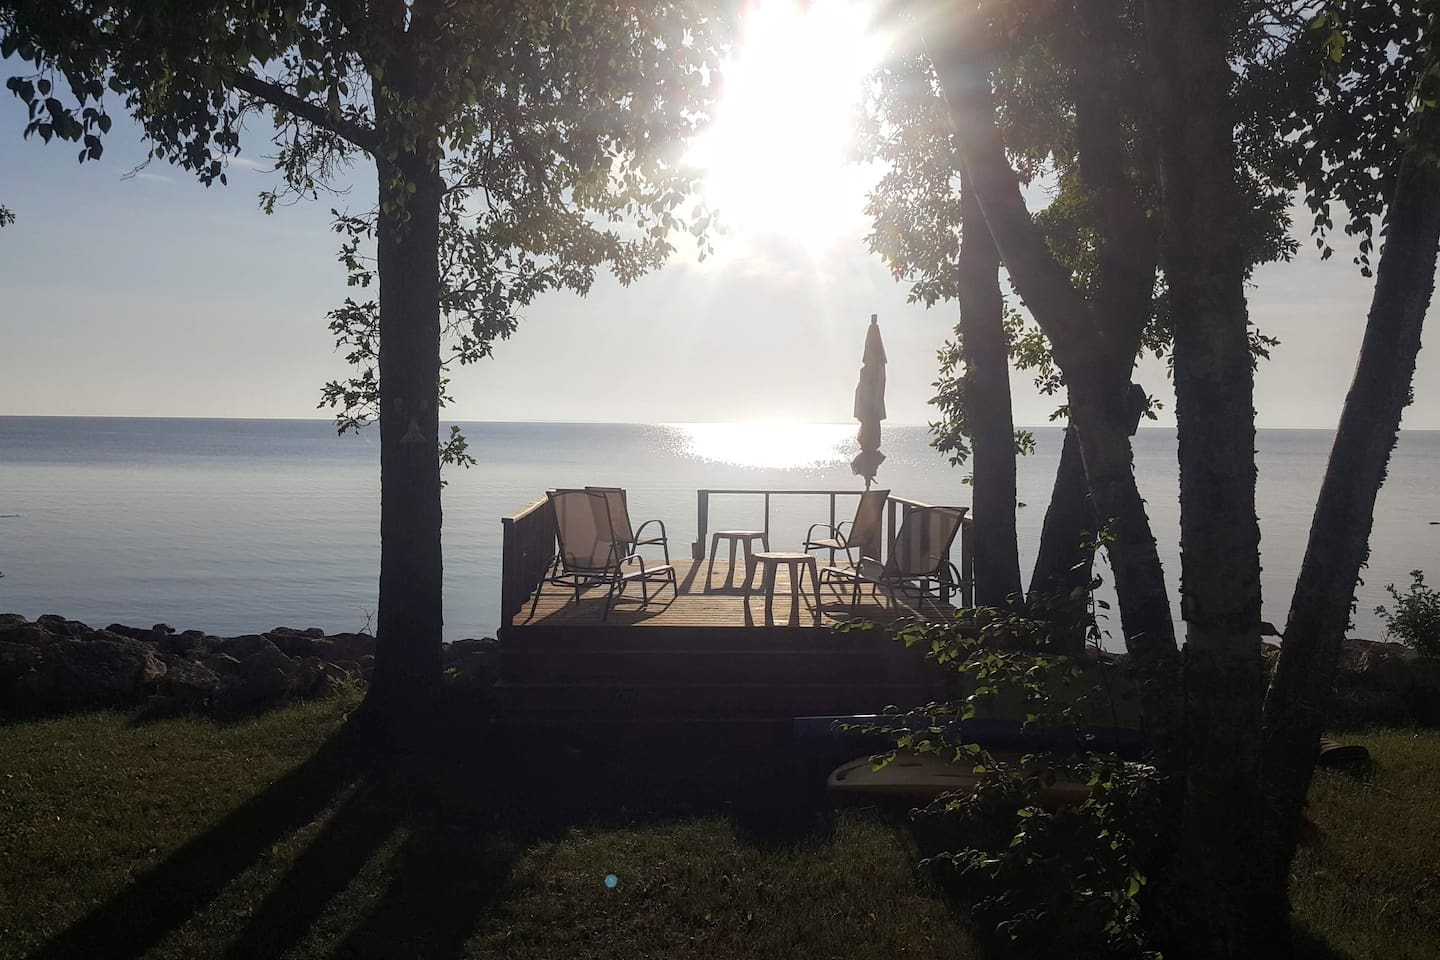 Morning view of private deck at the front of the cottage overlooking the lake.